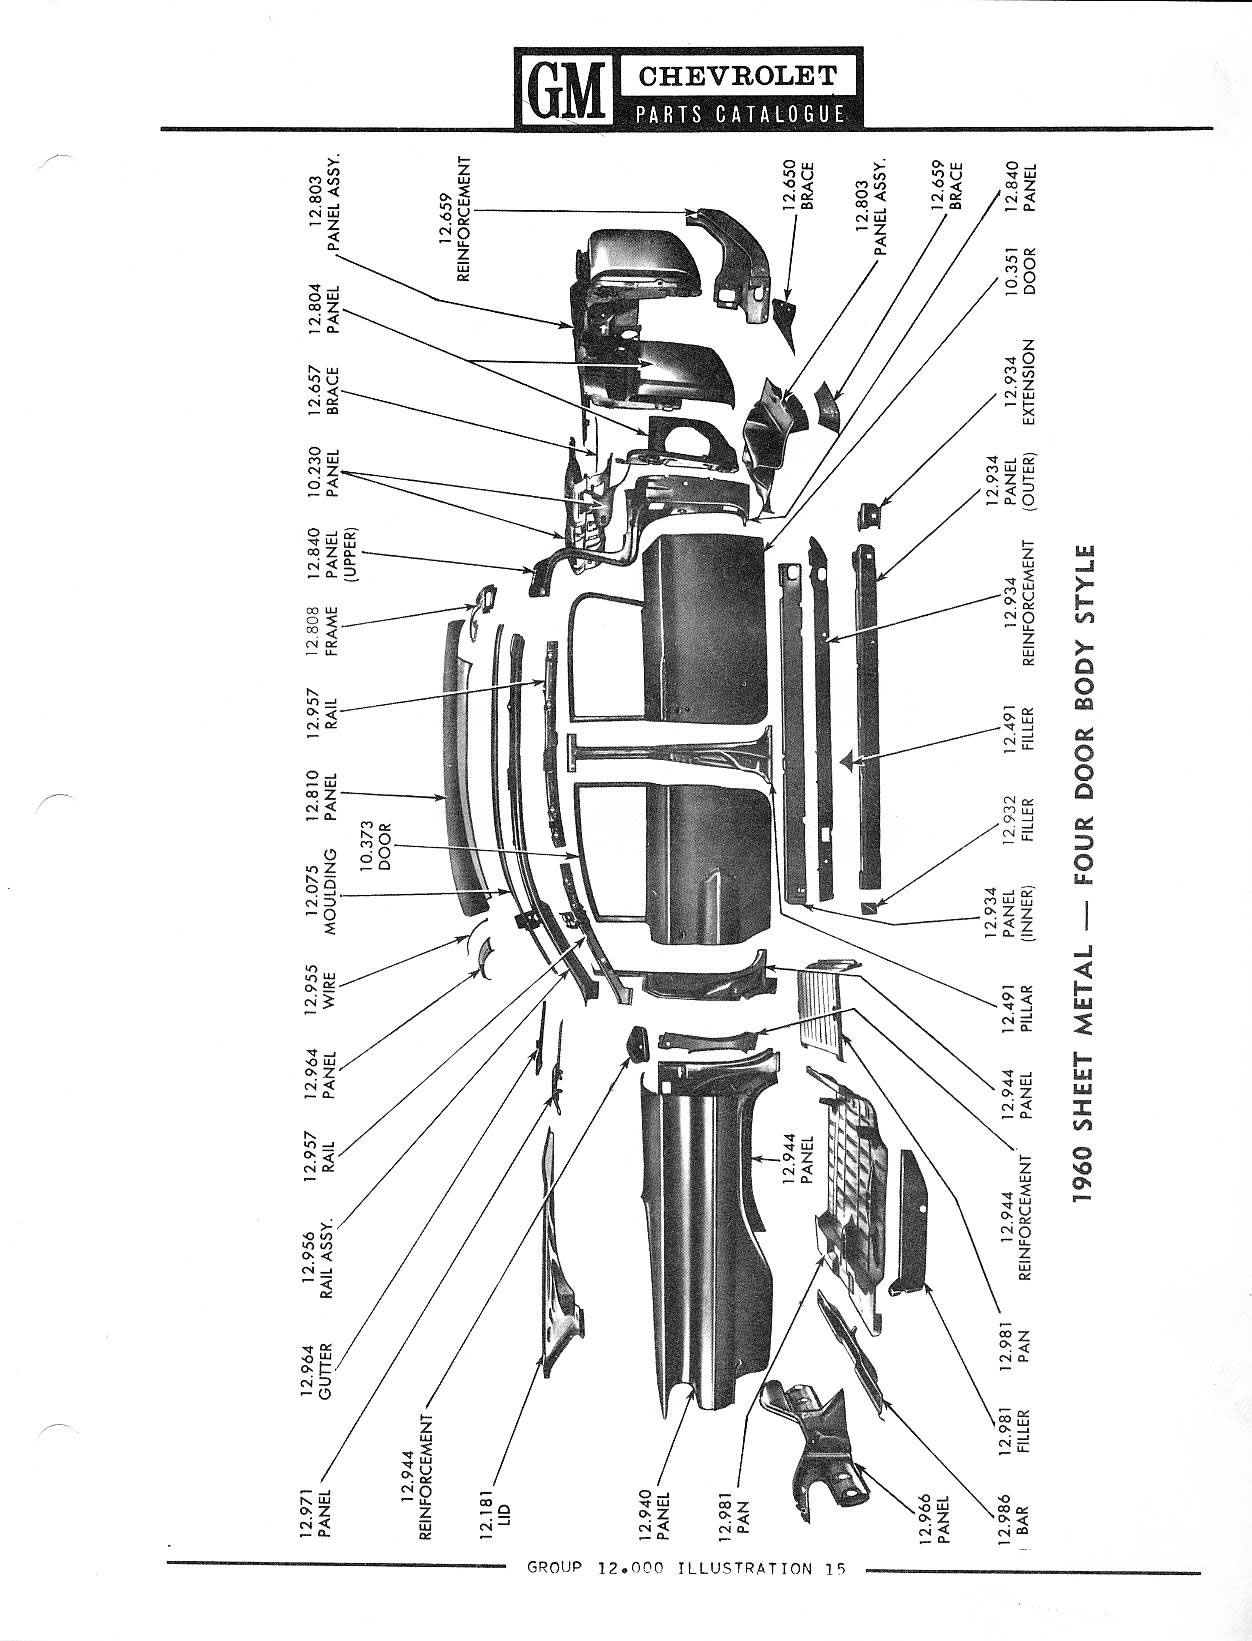 230581060592 moreover Rear Bumper Seal 20 1466 29 in addition Side Window Weatherstrip 70 0064 57 as well 68 Chevelle Window Regulator Diagram furthermore 1962 Cadillac Restoration Parts Rear 57102 Prd1. on 1959 buick restoration